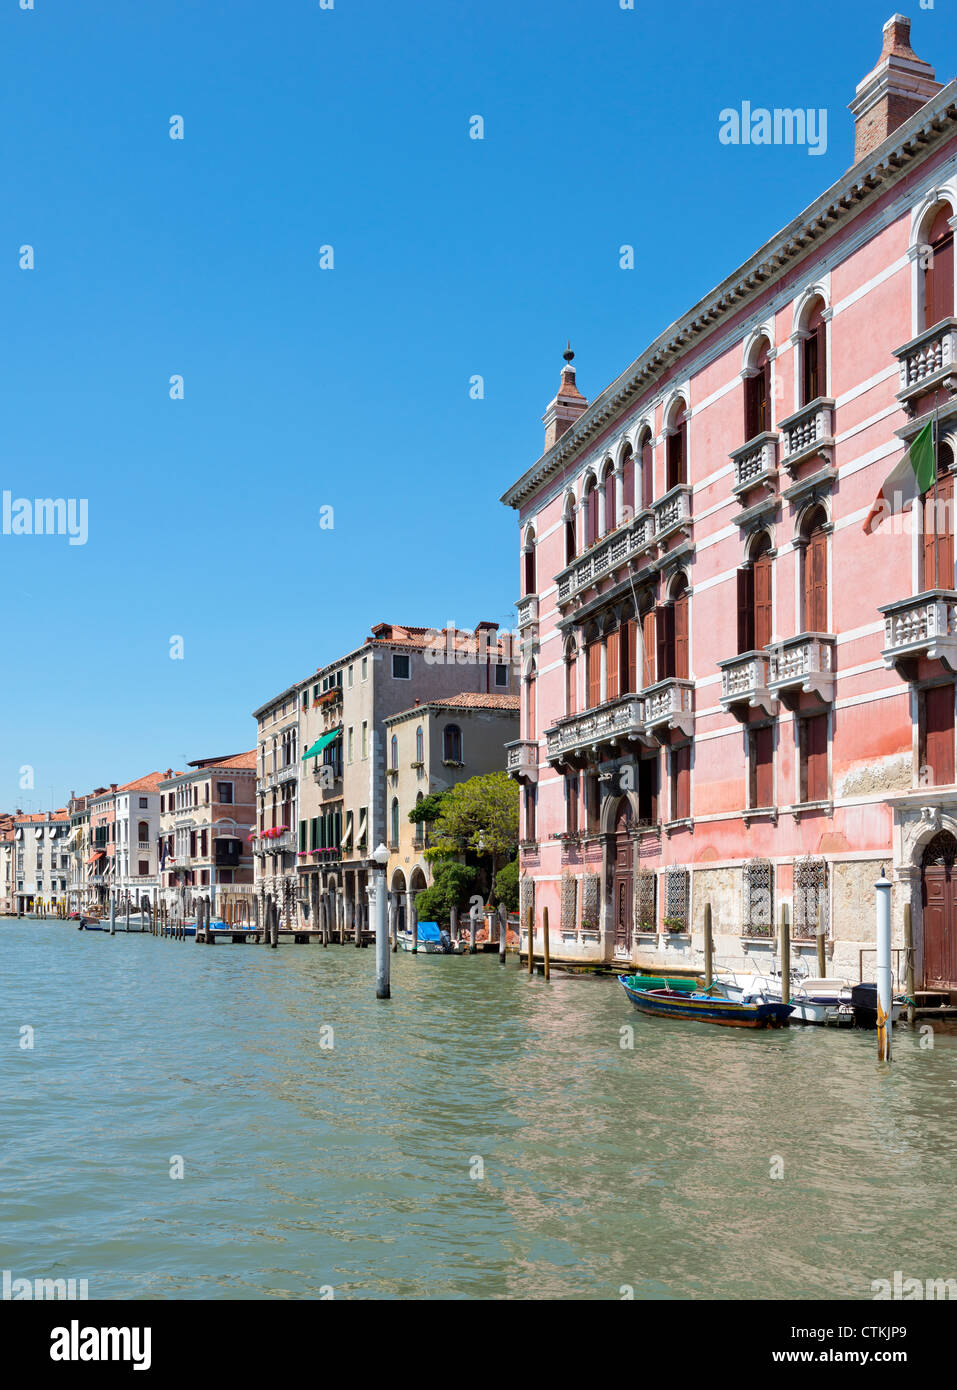 Cityscape of Venice taken on the Grand canal Italy Stock Photo